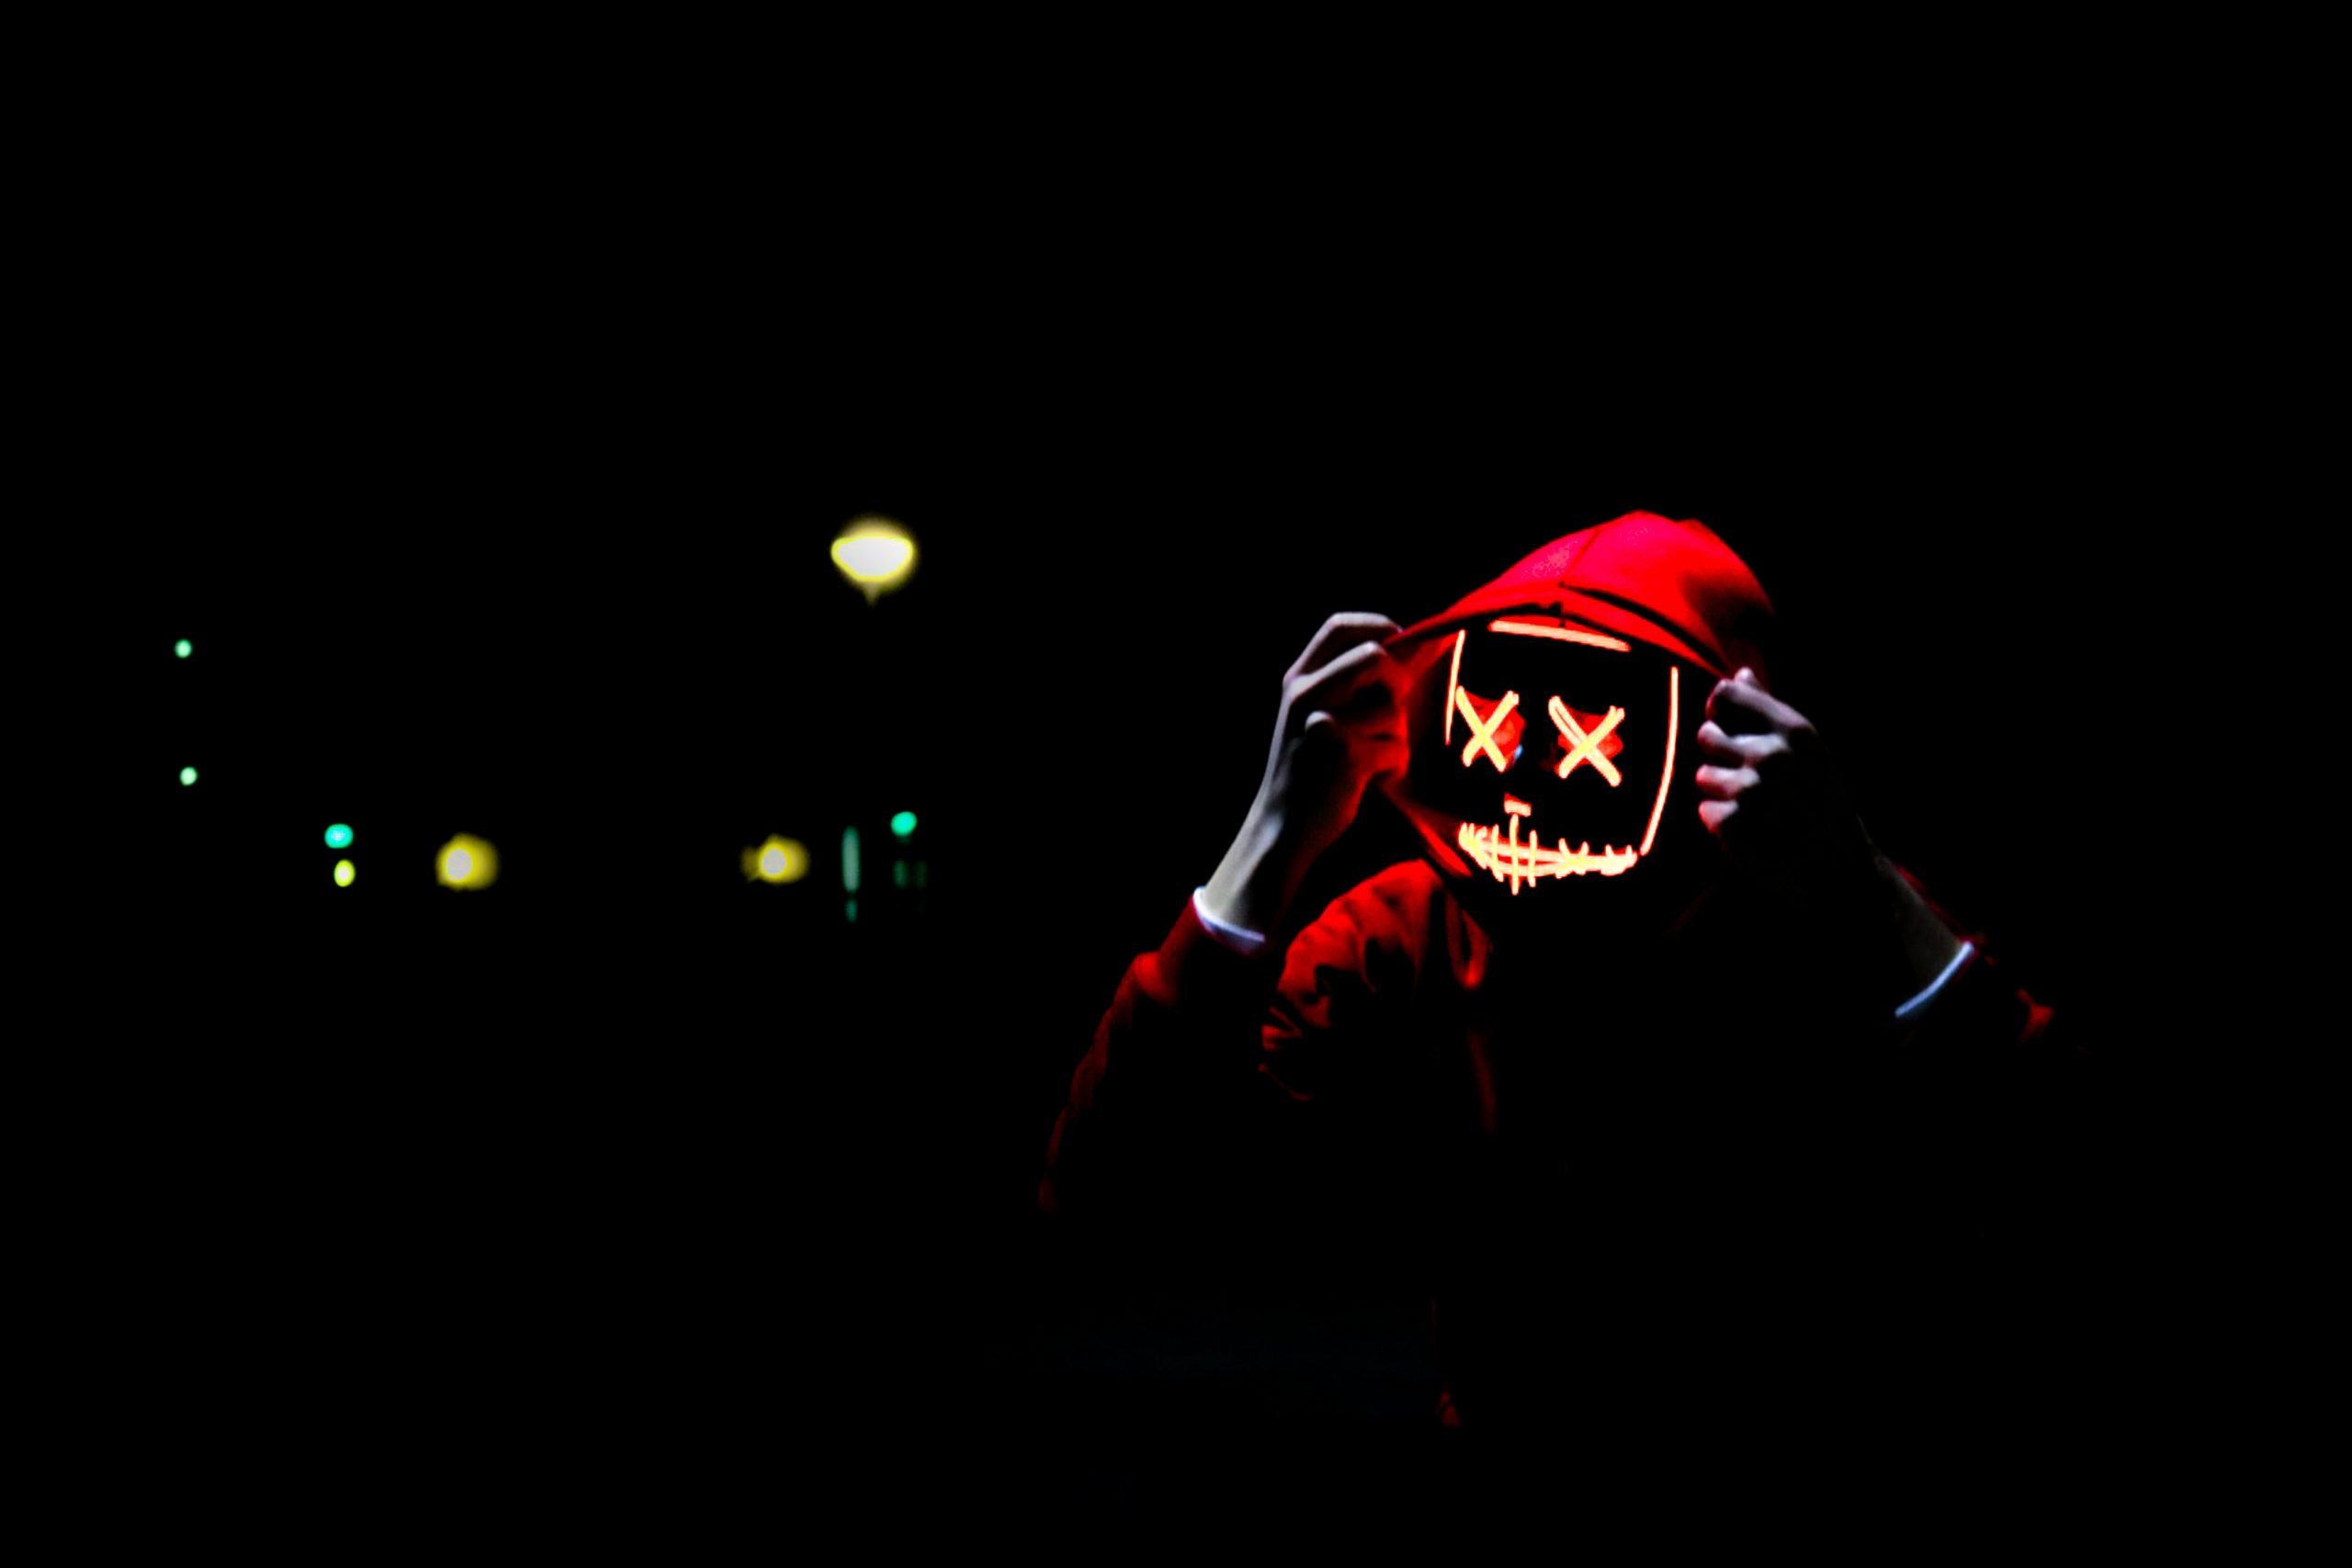 wallpaper Person wearing hoodie and neon mask